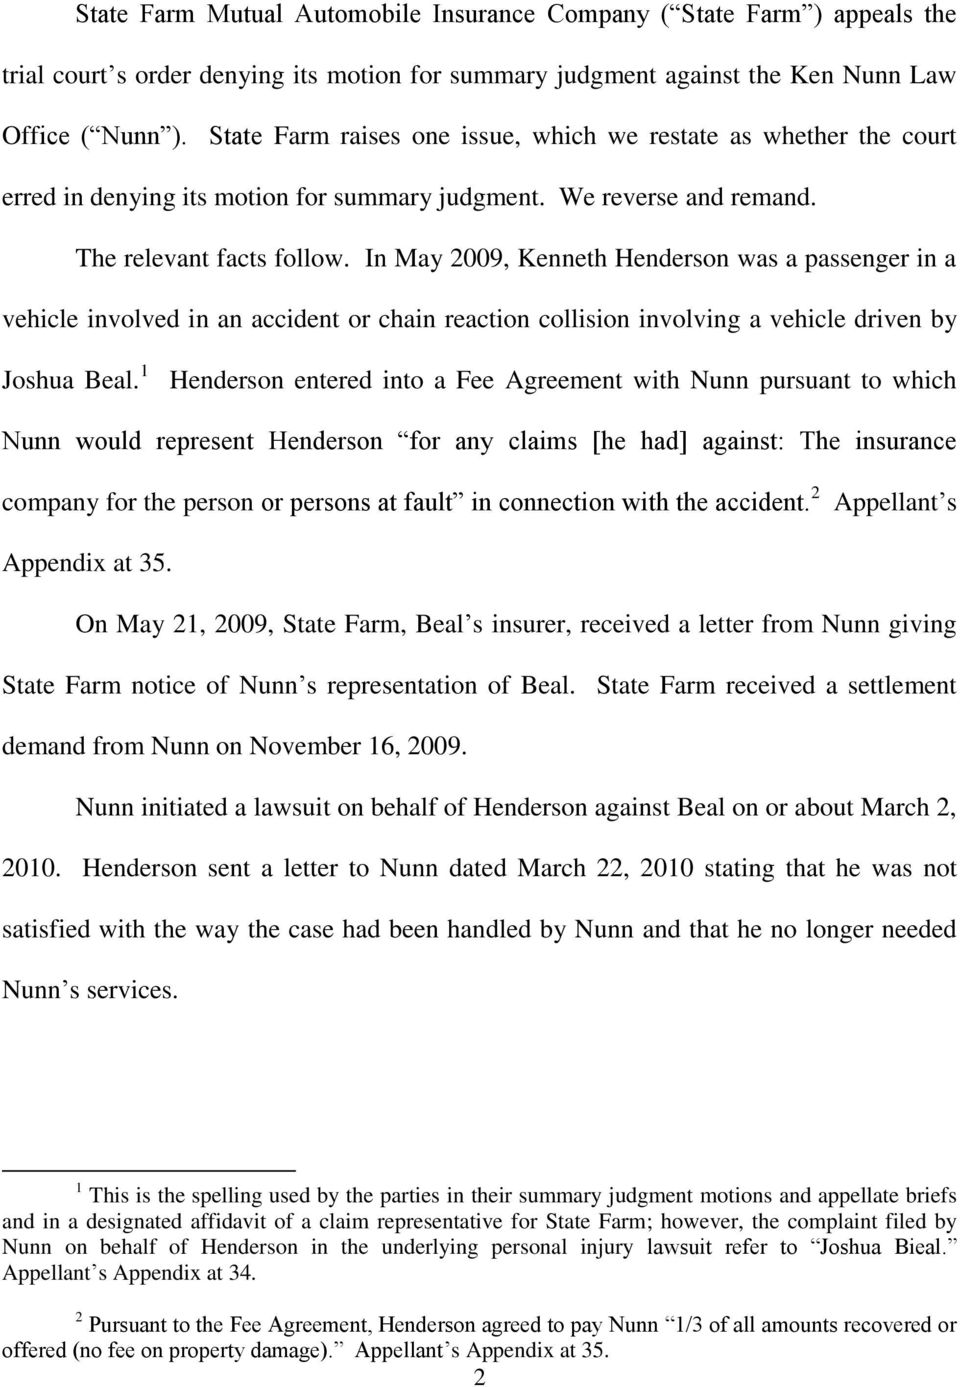 In May 2009, Kenneth Henderson was a passenger in a vehicle involved in an accident or chain reaction collision involving a vehicle driven by Joshua Beal.